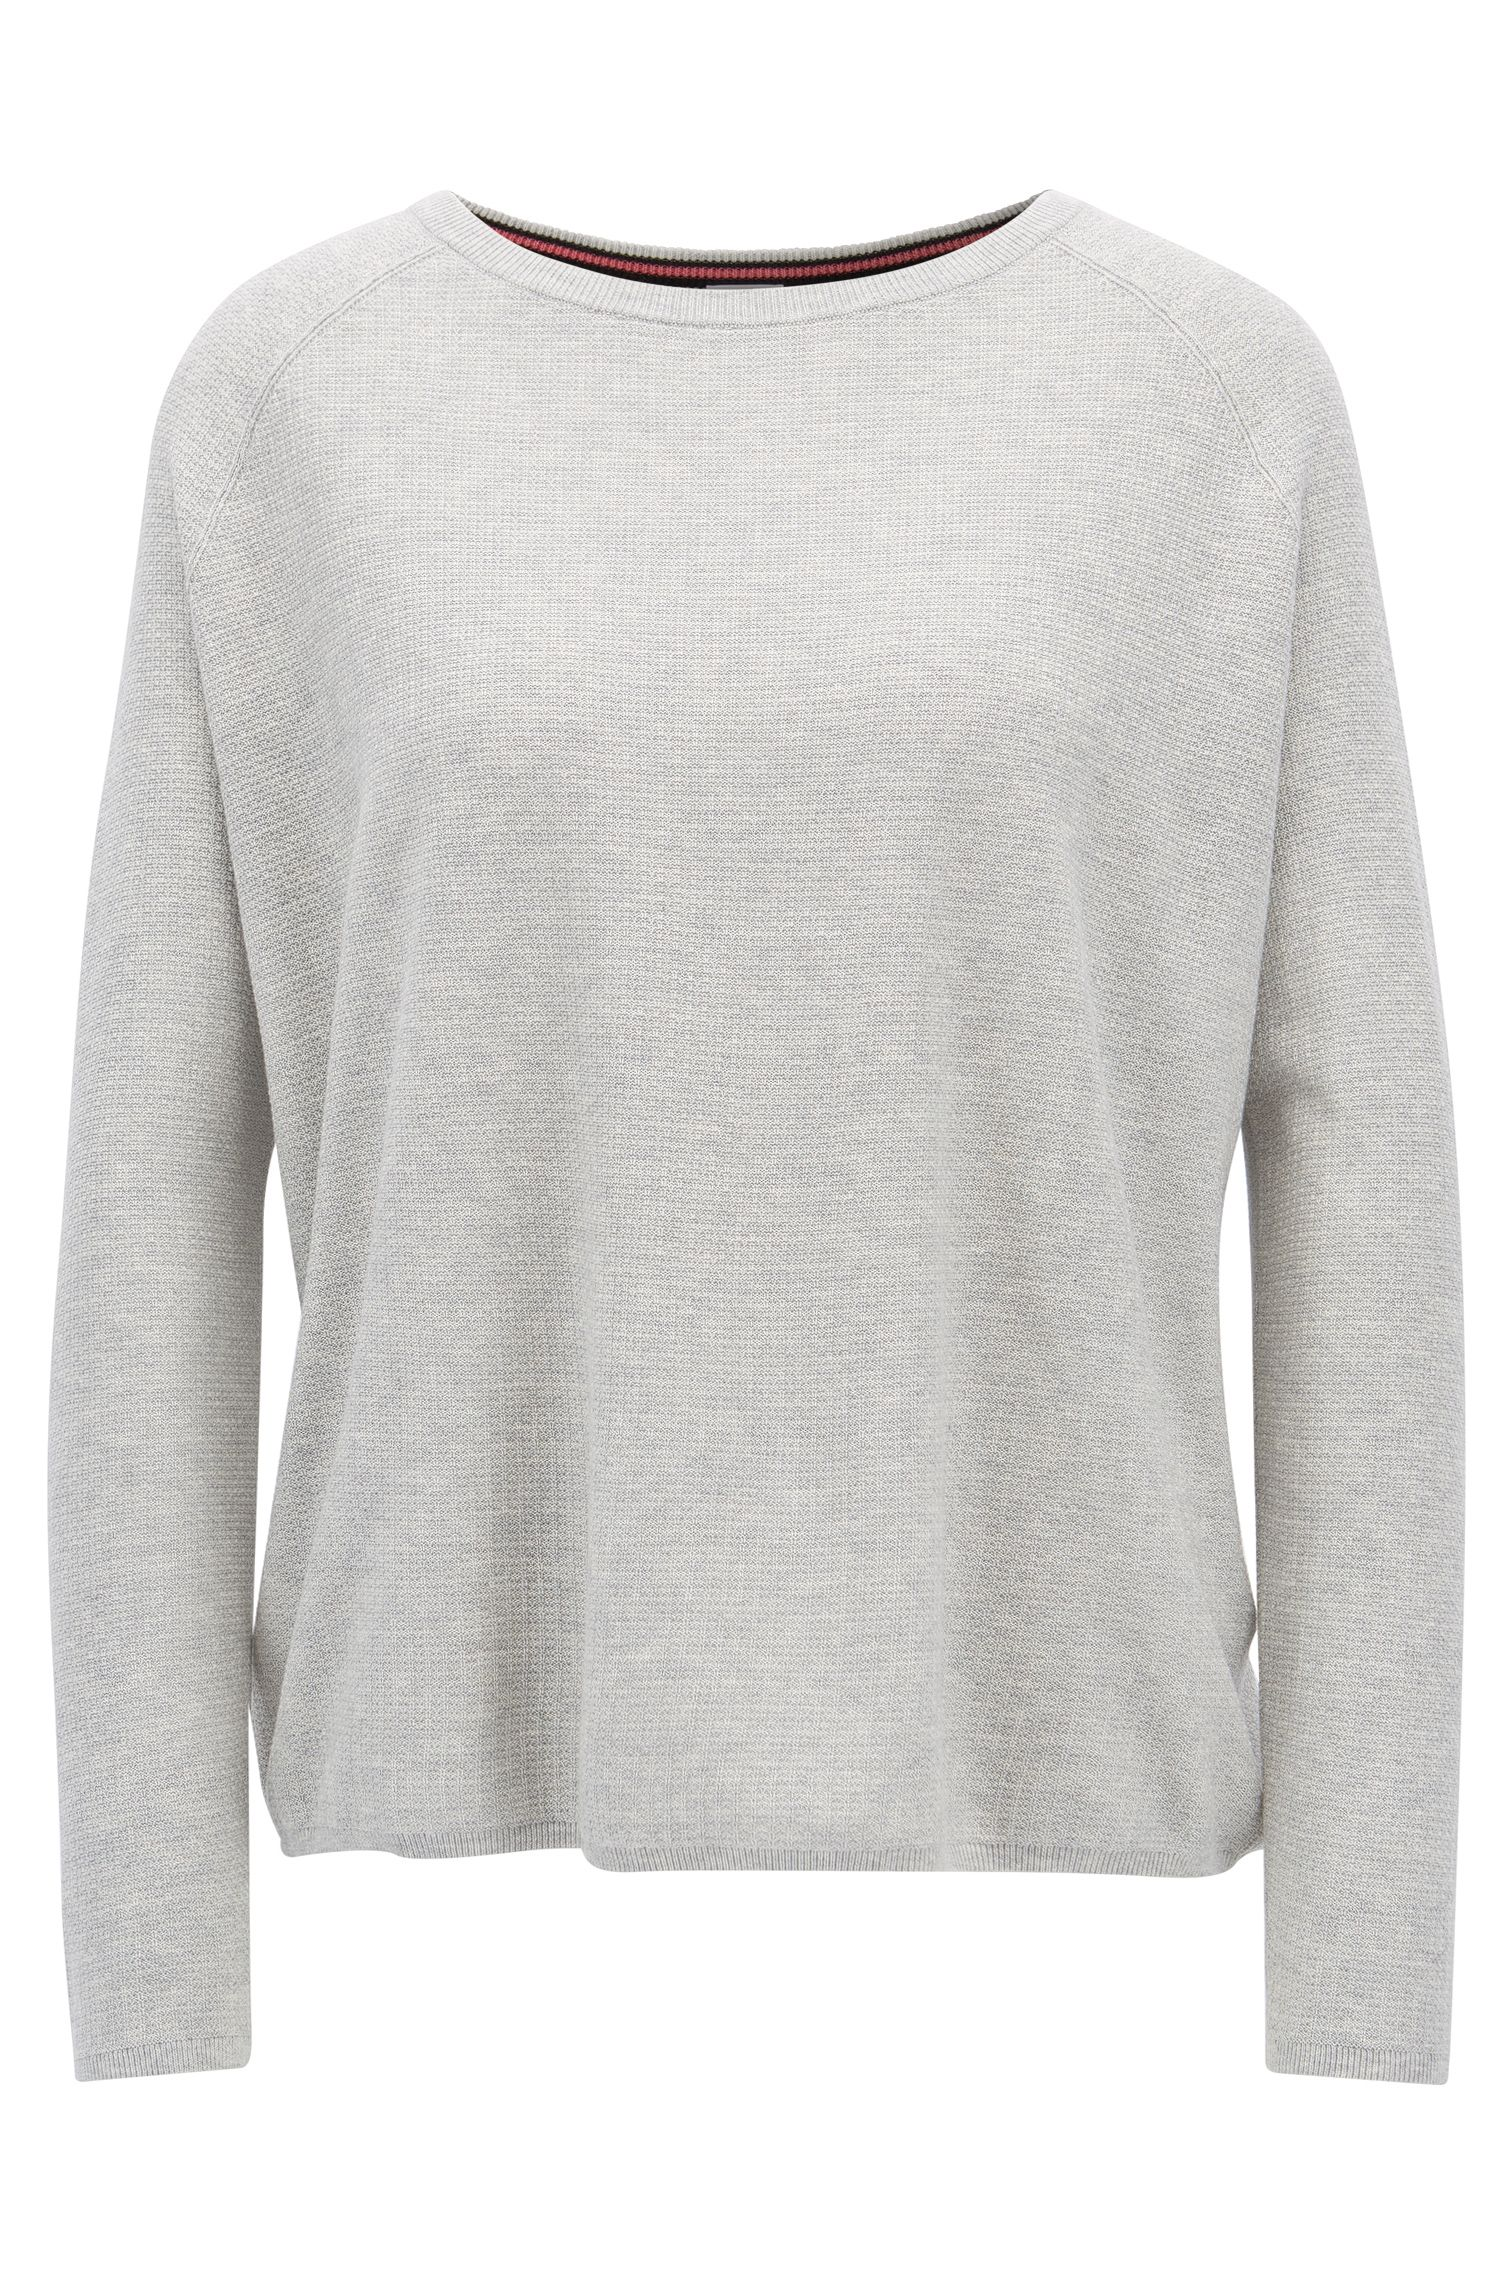 Relaxed-fit sweater in a cotton blend